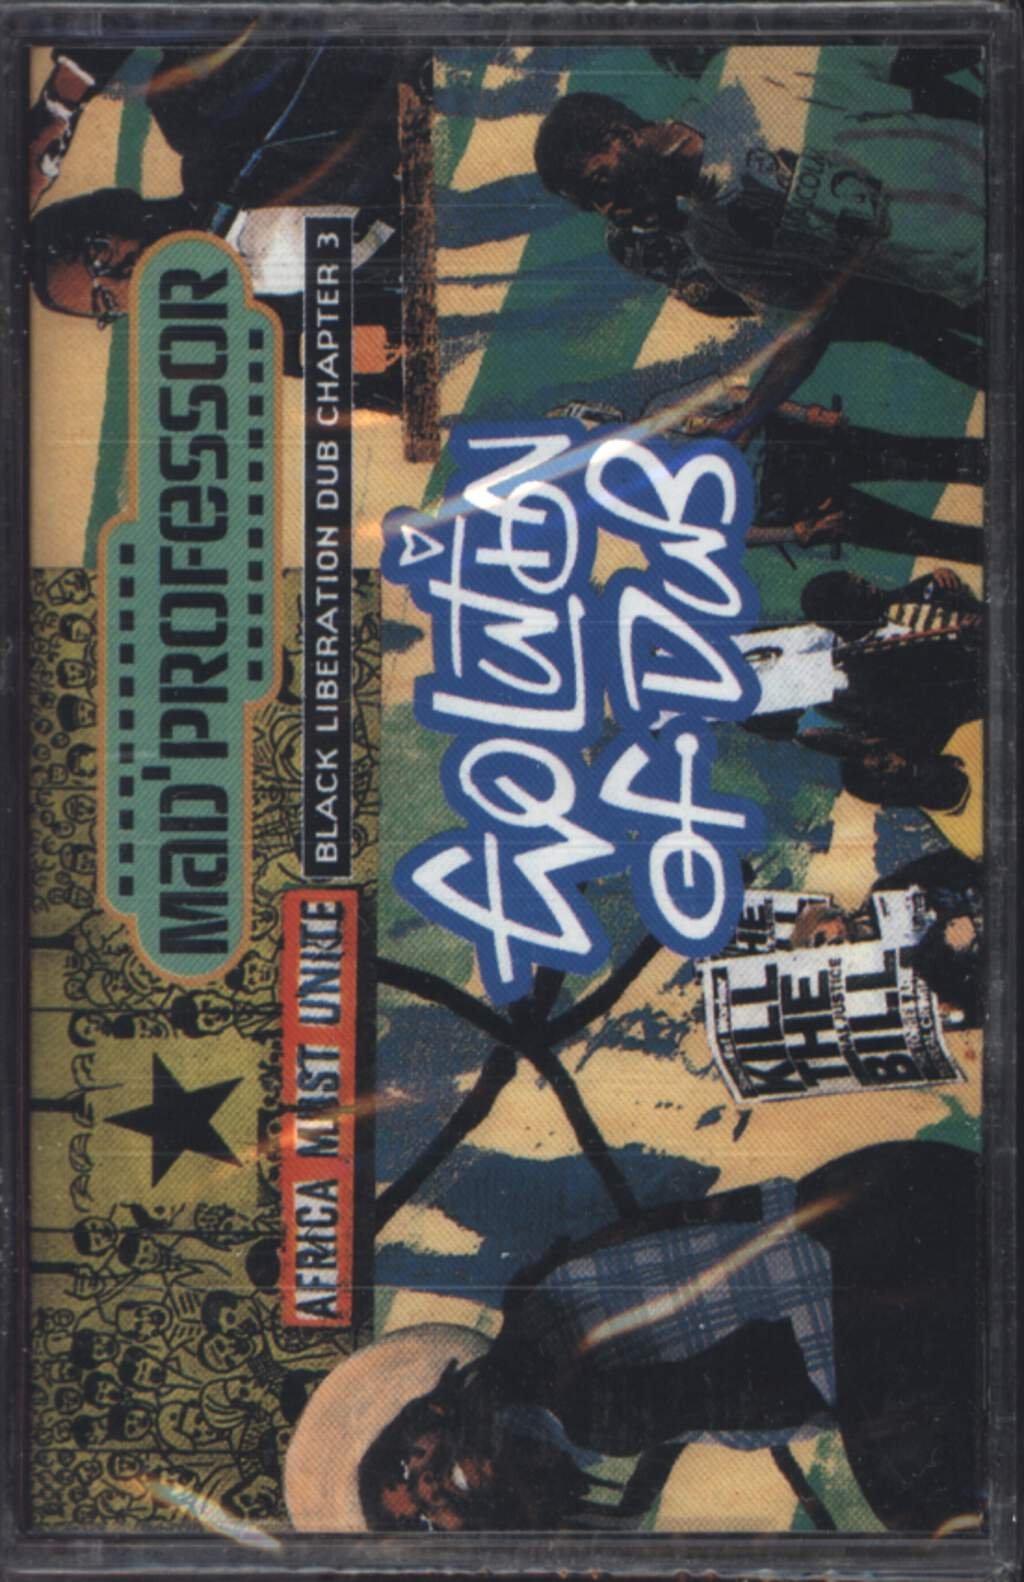 Mad Professor: Evolution Of Dub: Black Liberation Dub, Chapter 3, Compact Cassette